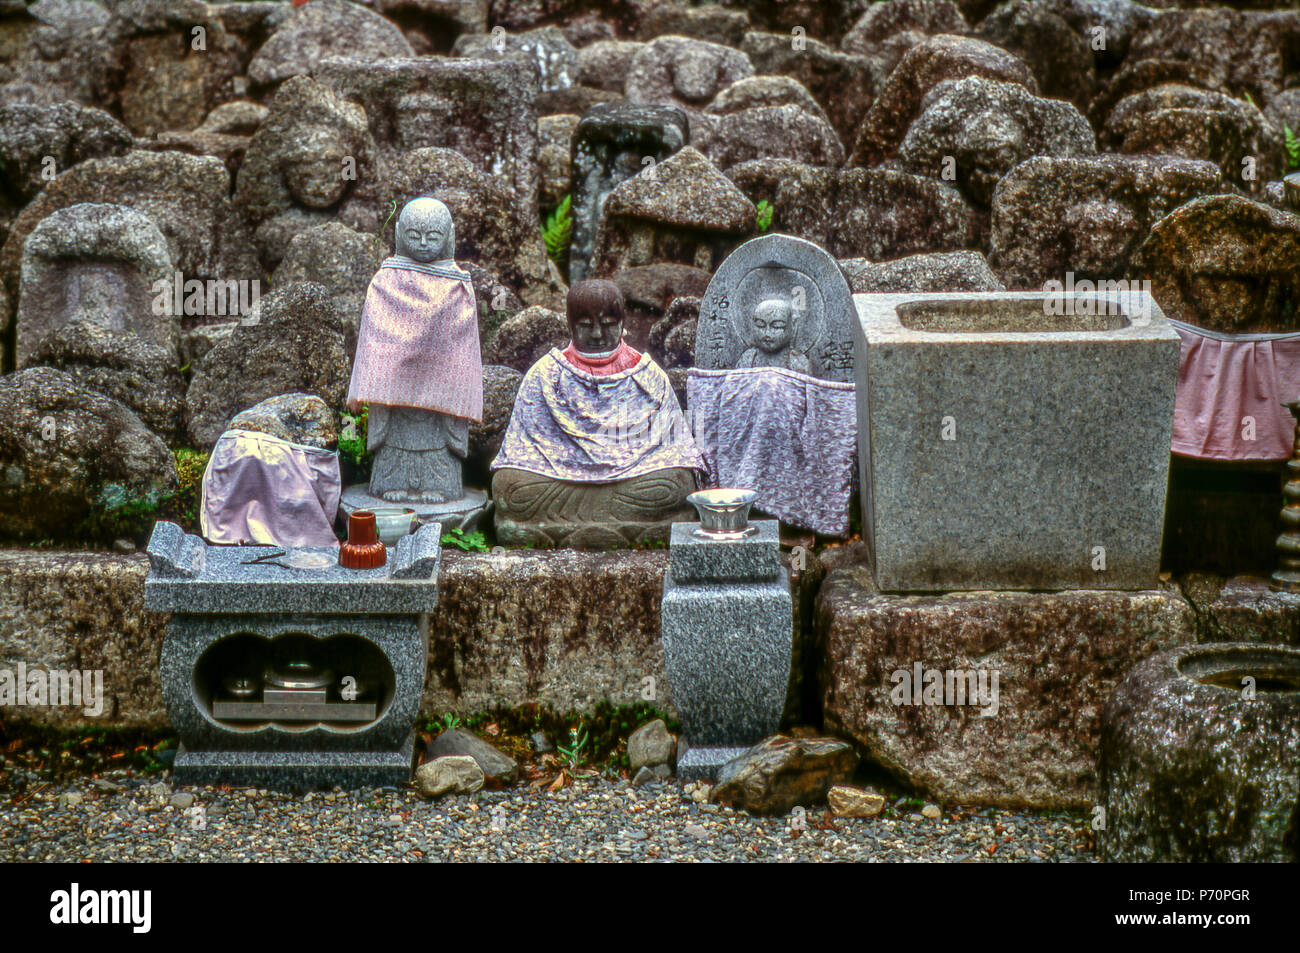 Small stone statues at Daitoku-ji temple, Kyoto, Japan - Stock Image